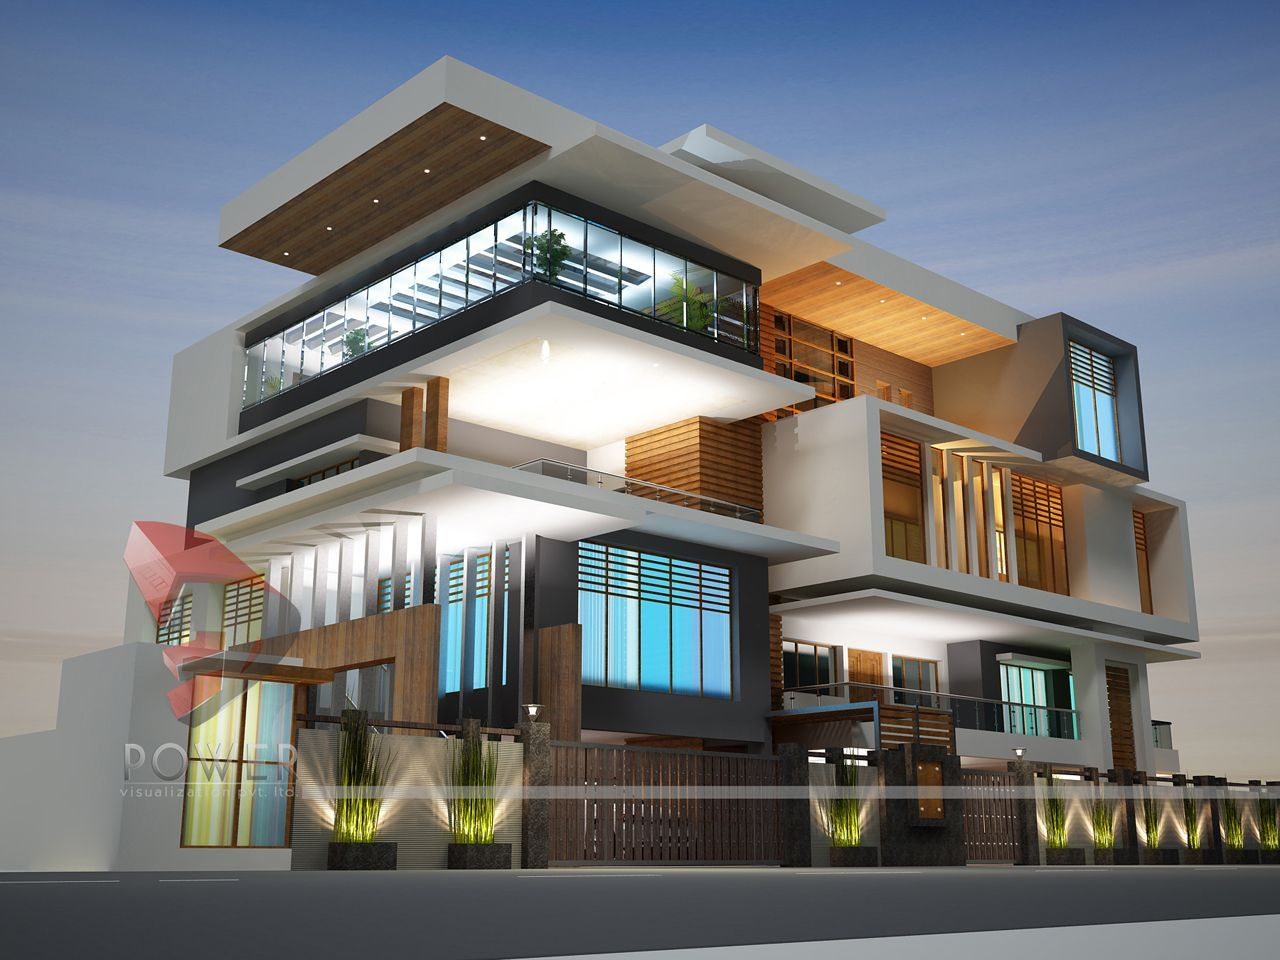 Modern house design in india architecture india modern for Award winning house designs in india